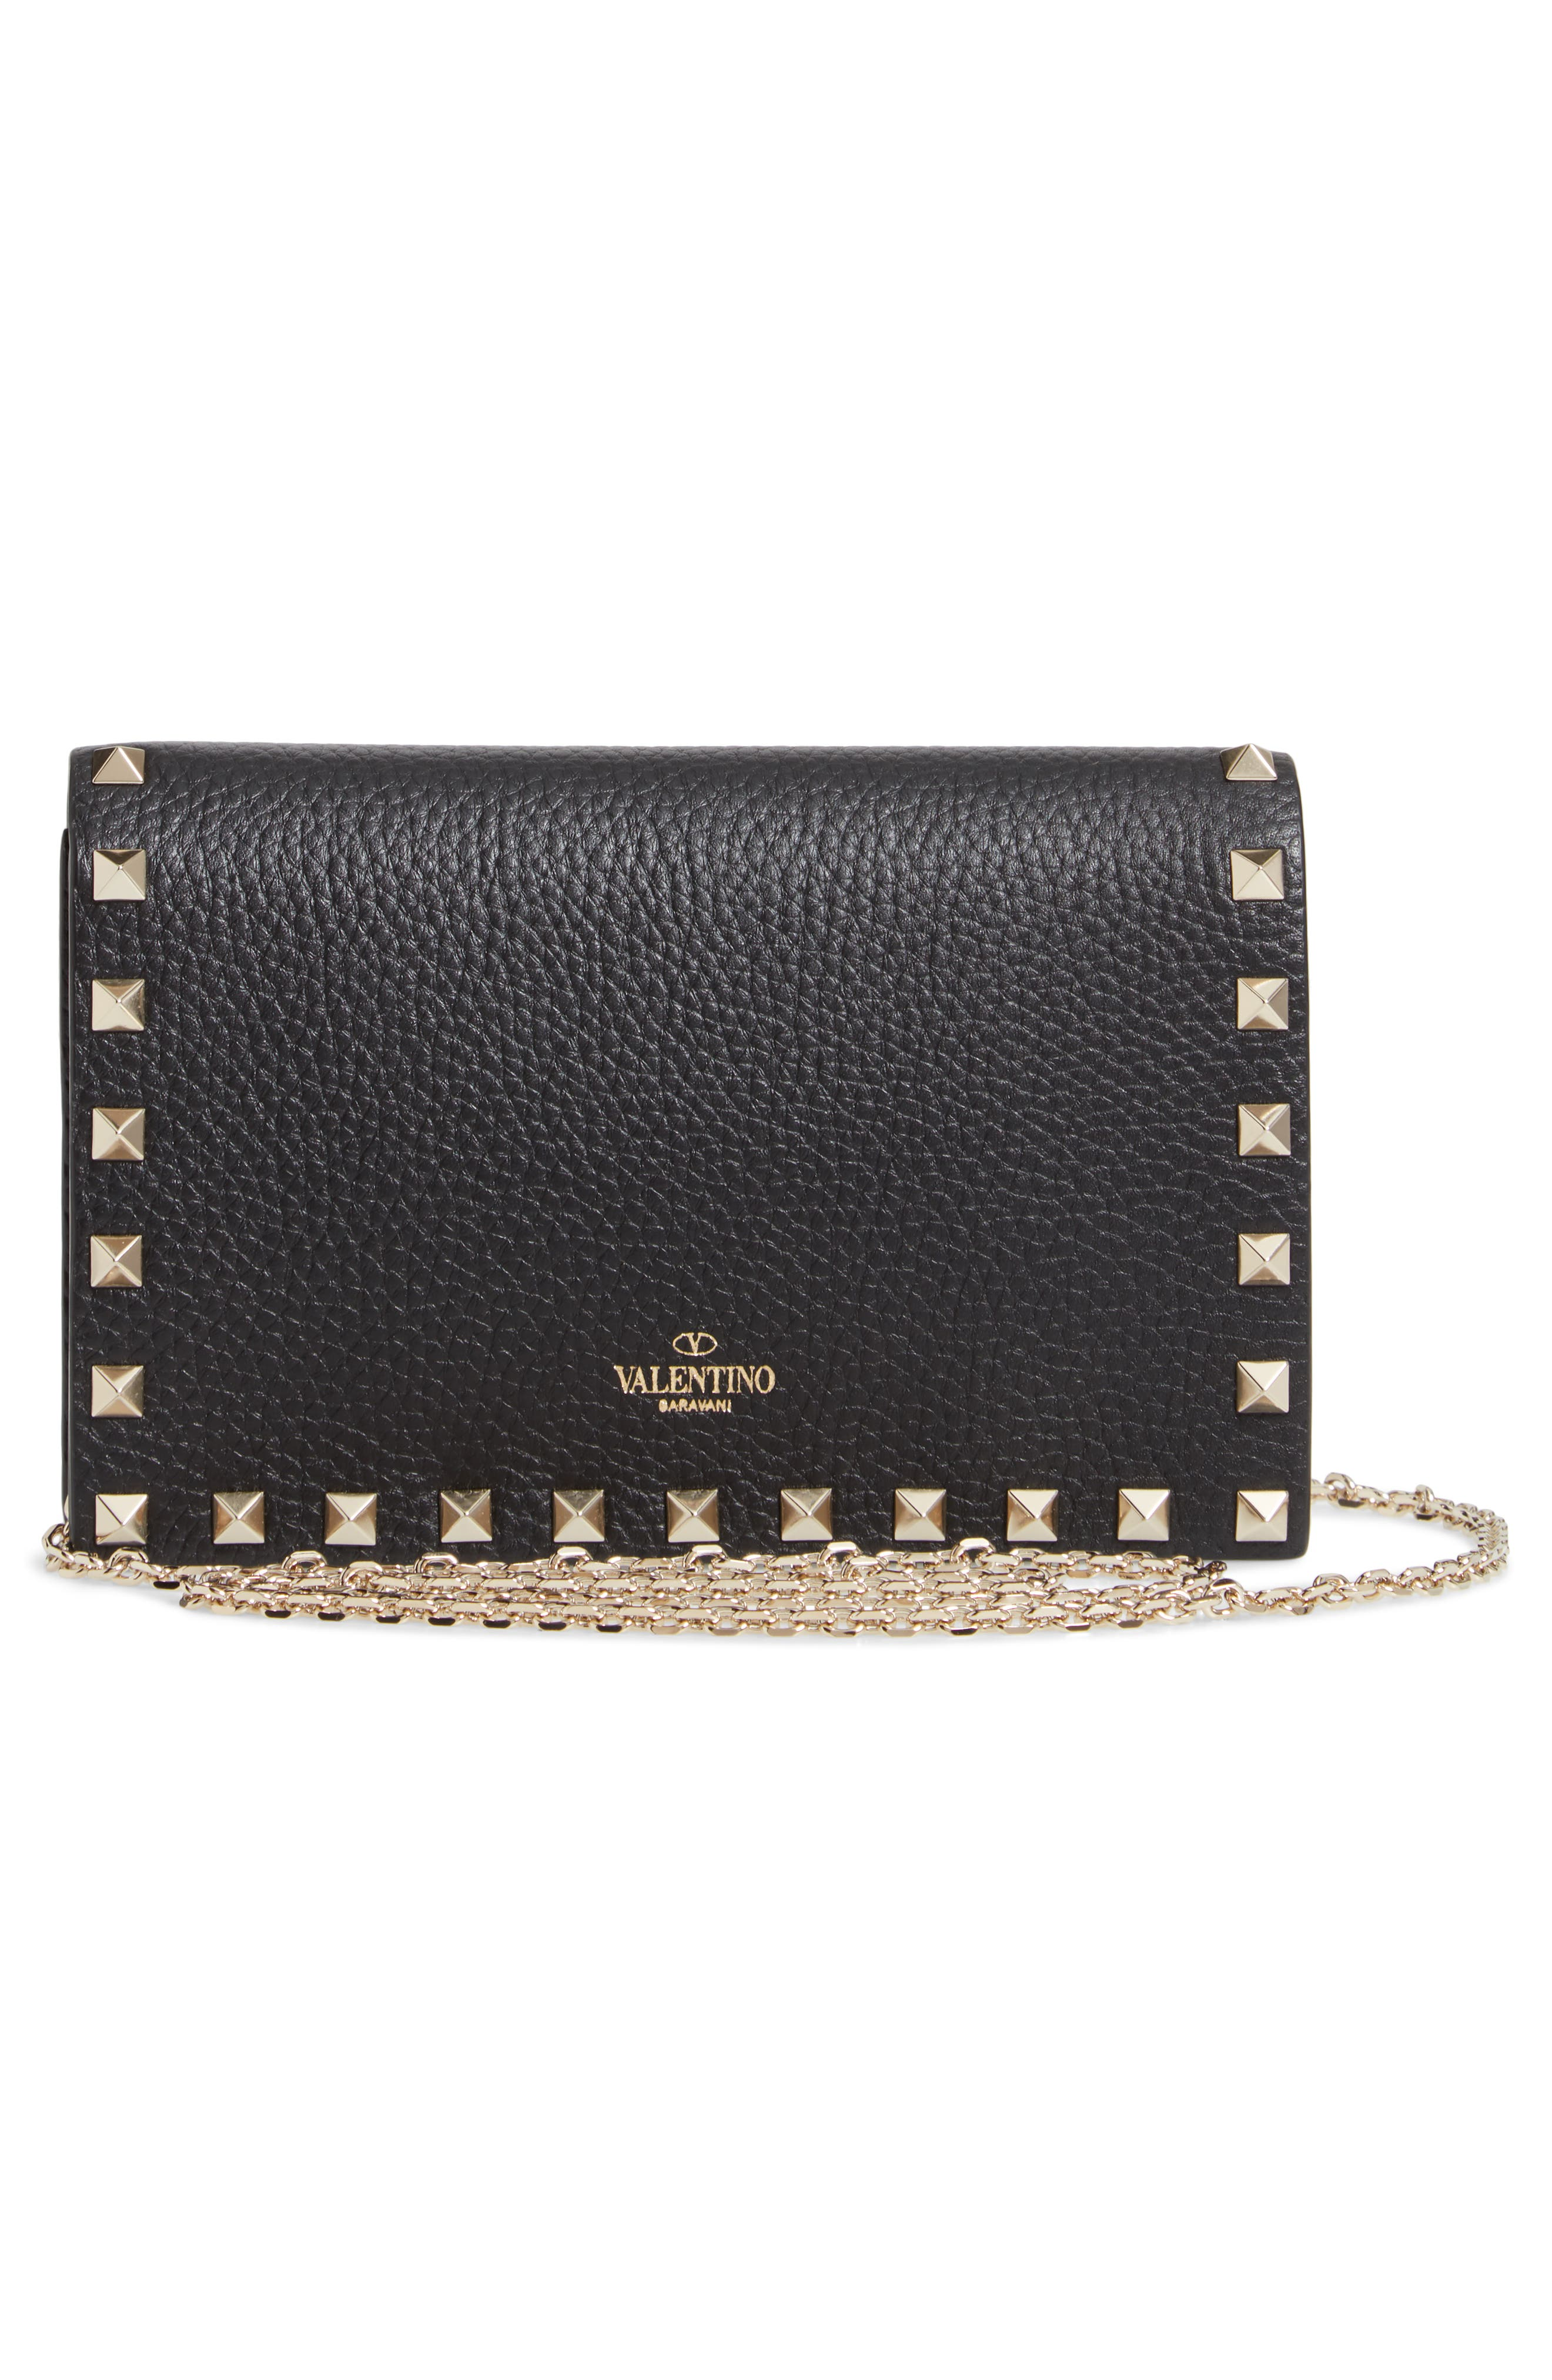 VALENTINO GARAVANI,                             Rockstud Calfskin Leather Envelope Pouch,                             Alternate thumbnail 3, color,                             NERO